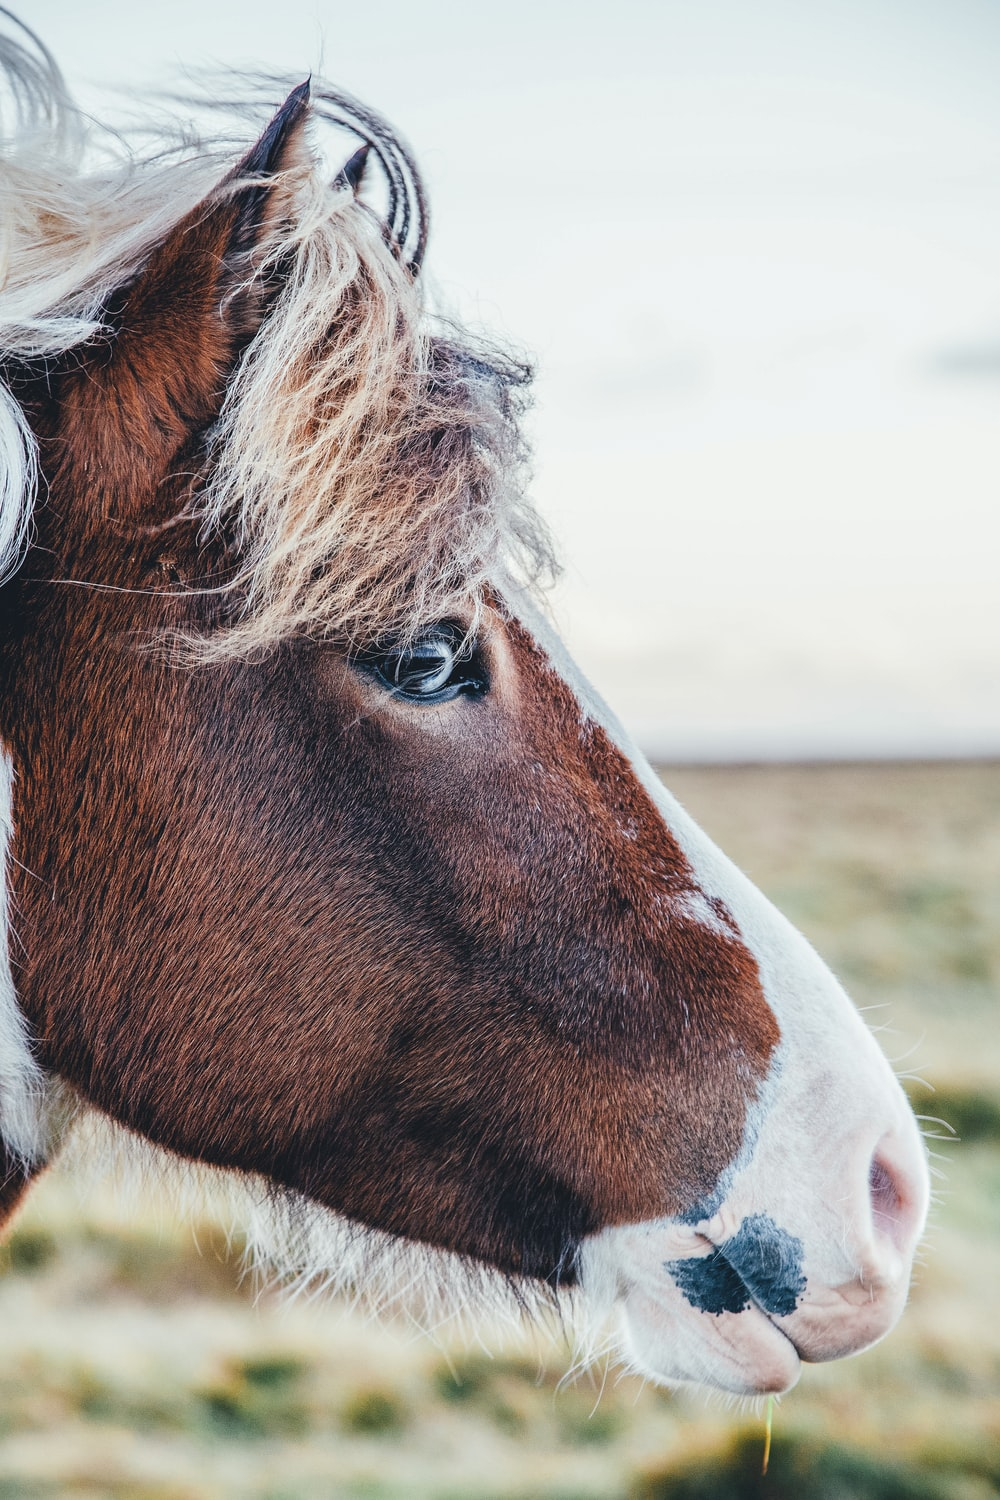 Shallow focus photography of brown and white horse